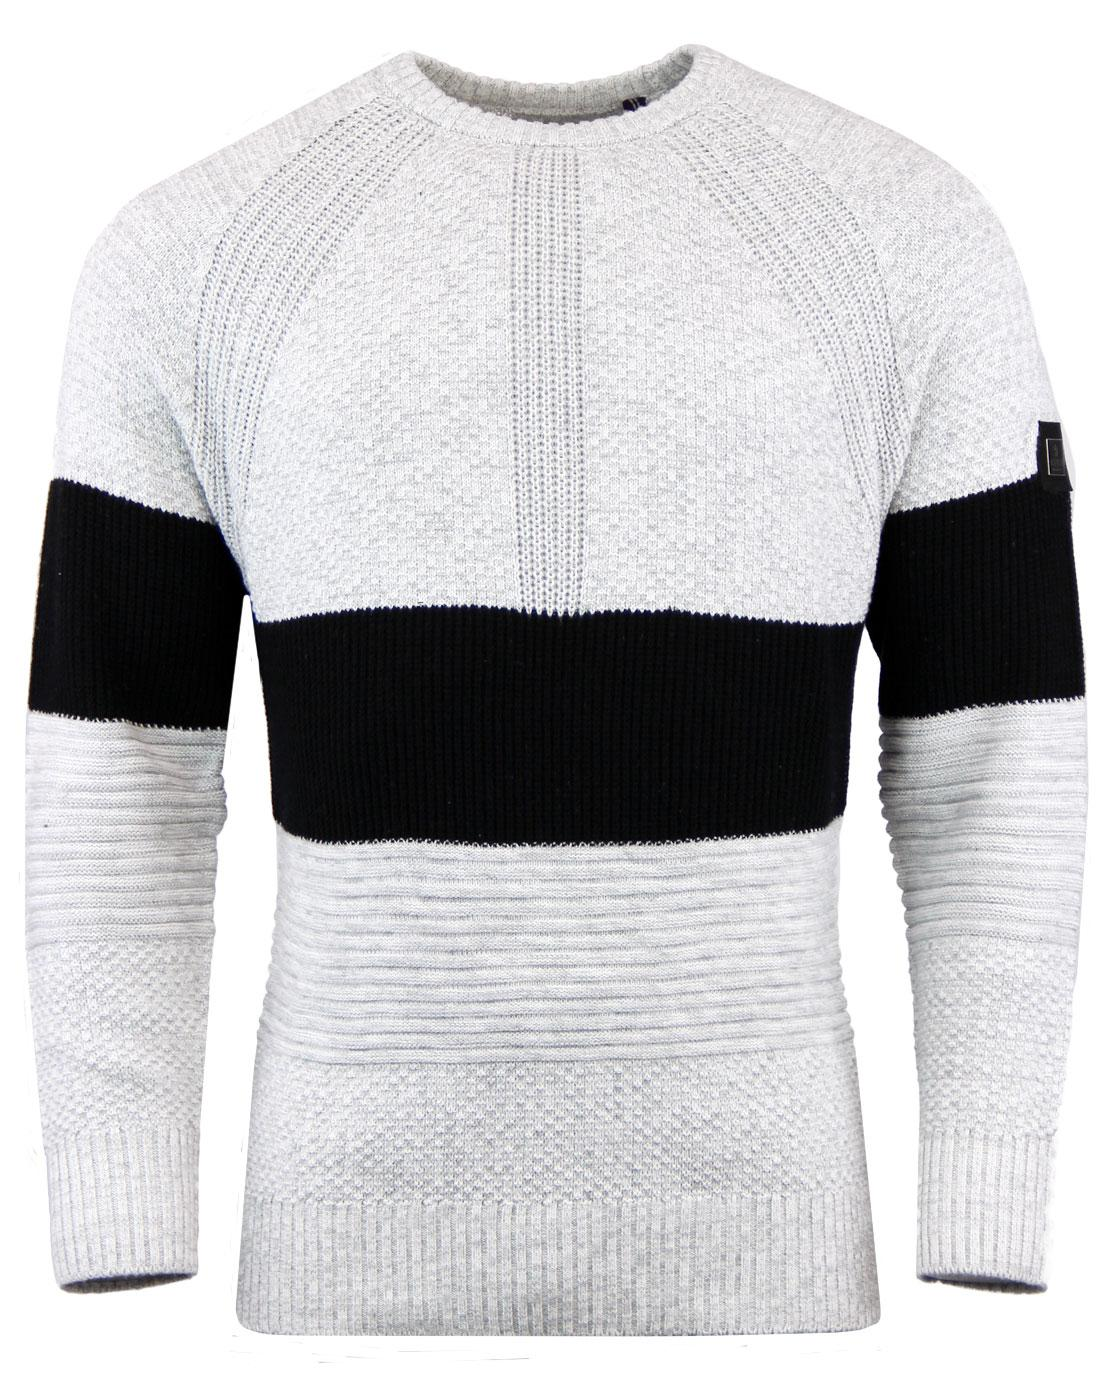 LUKE 1977 New Margin Mod Ribbed Knit Stripe Jumper